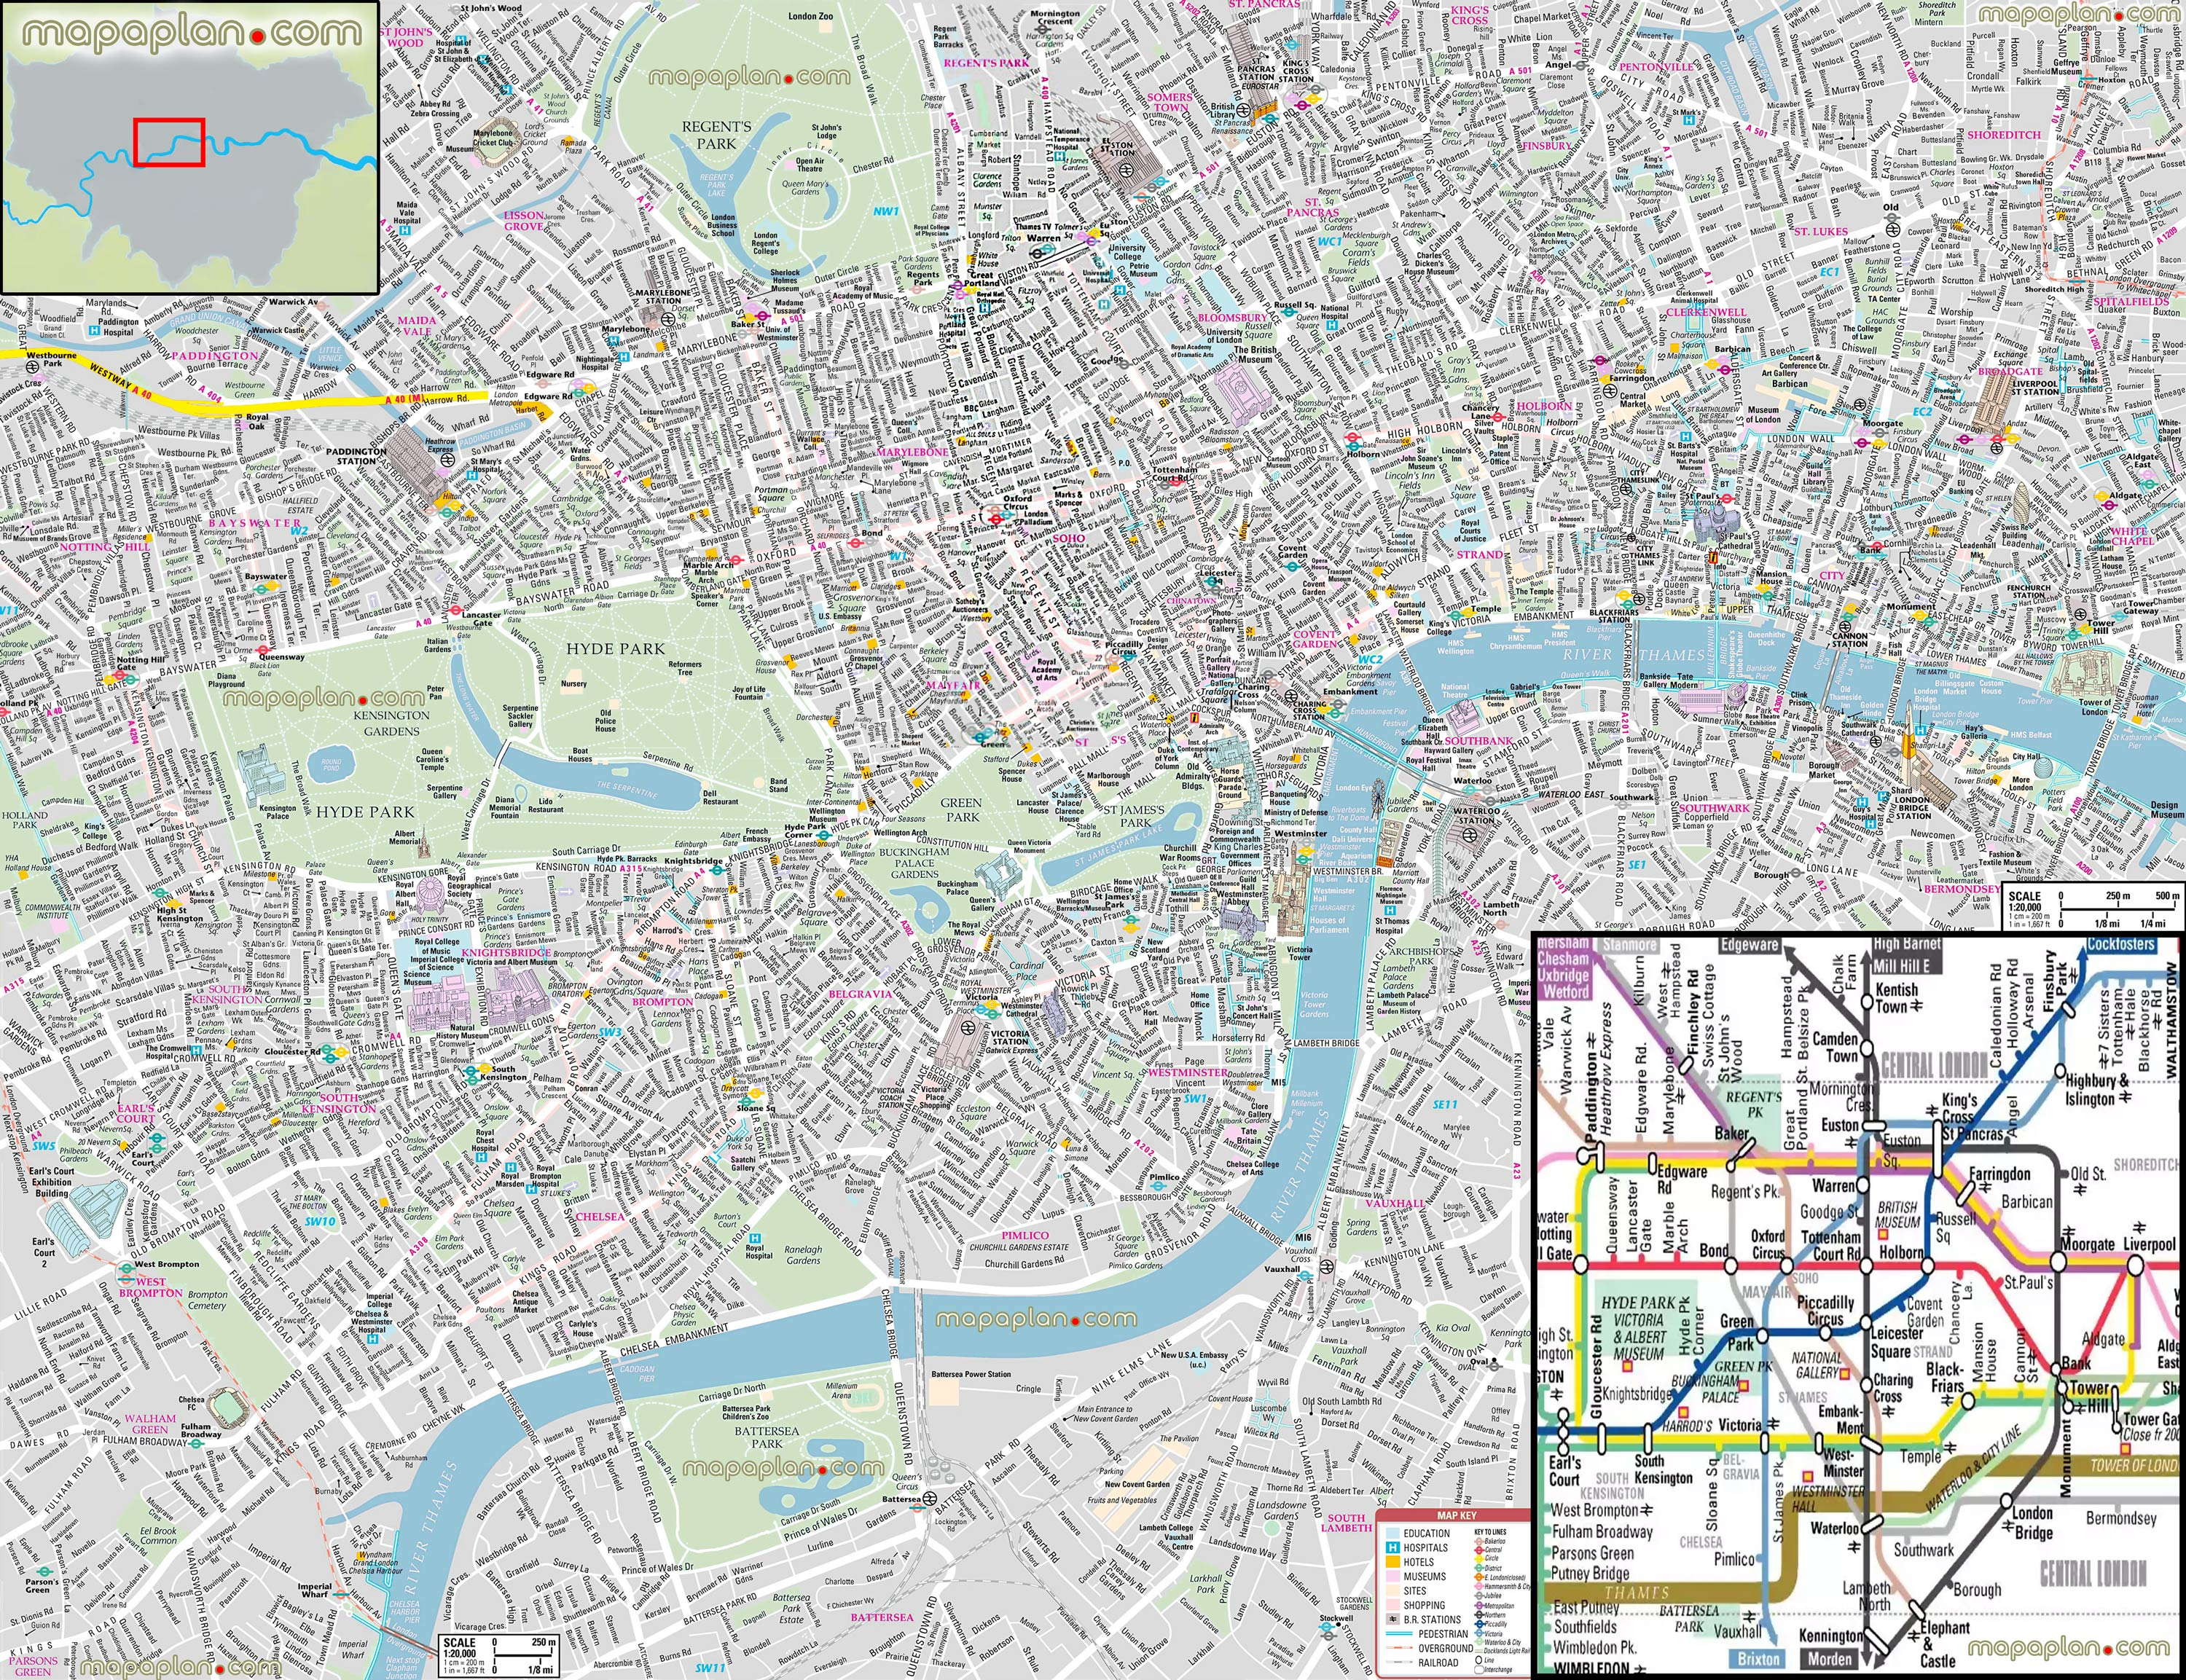 Tourist Attraction Map Of London.Tourist Attraction In London City Tourism Company And Tourism